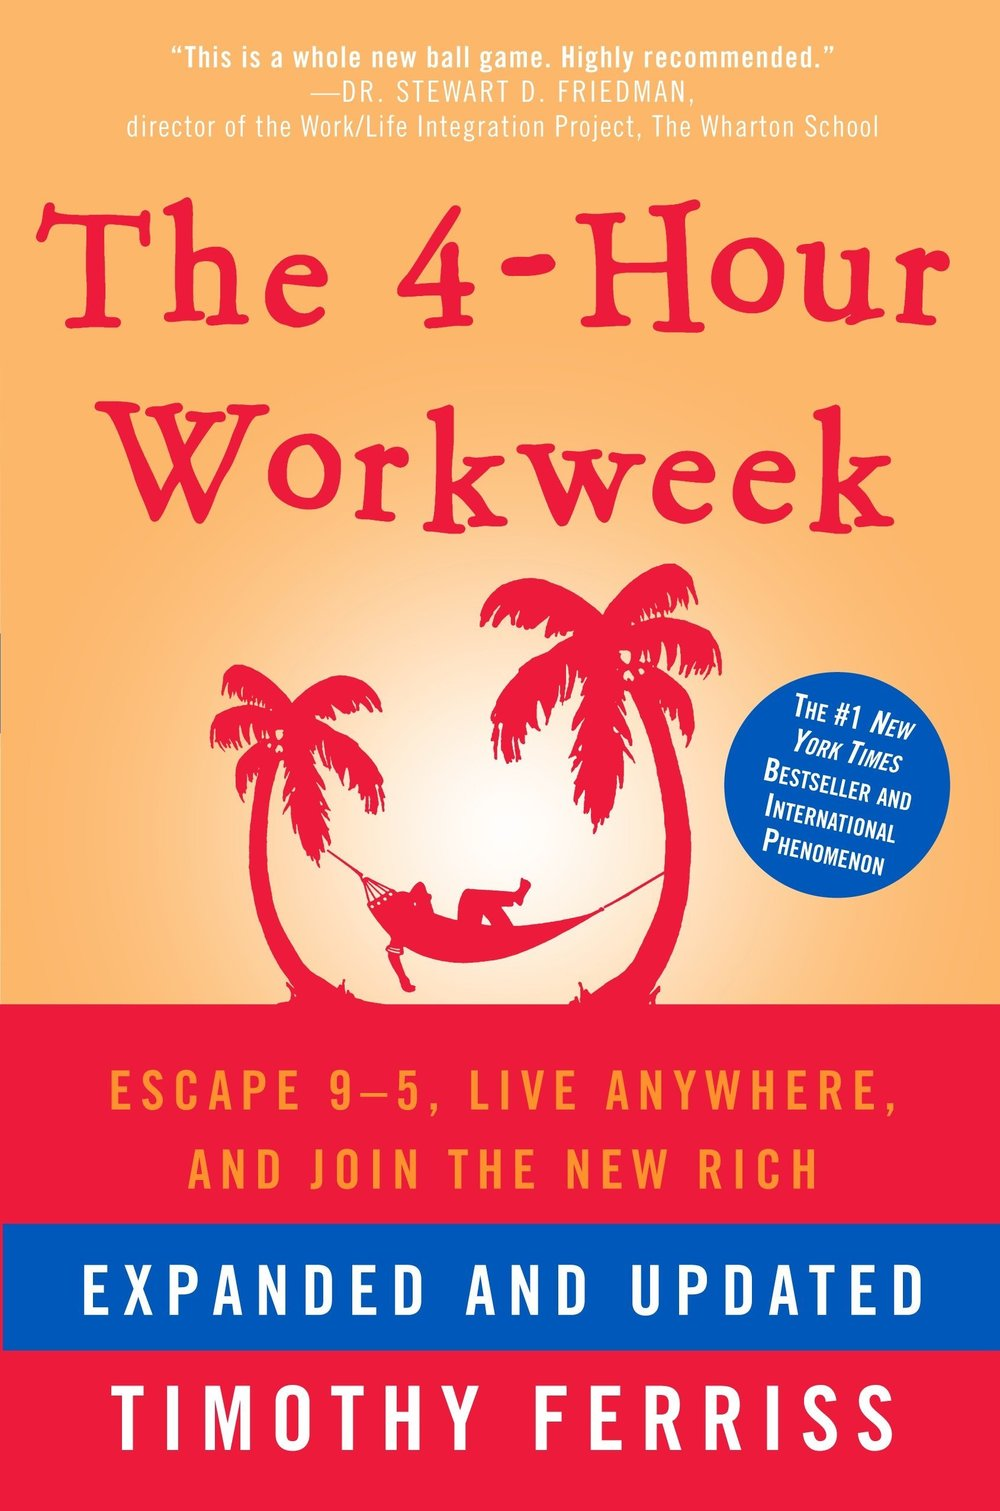 The   4  -  Hour Workweek   is the step-by-step blueprint to free yourself from the shackles of a corporate   job  , create a business to fund the lifestyle of your dreams, and live life like a millionaire, without actually having to be one… YET…  Career, Productivity